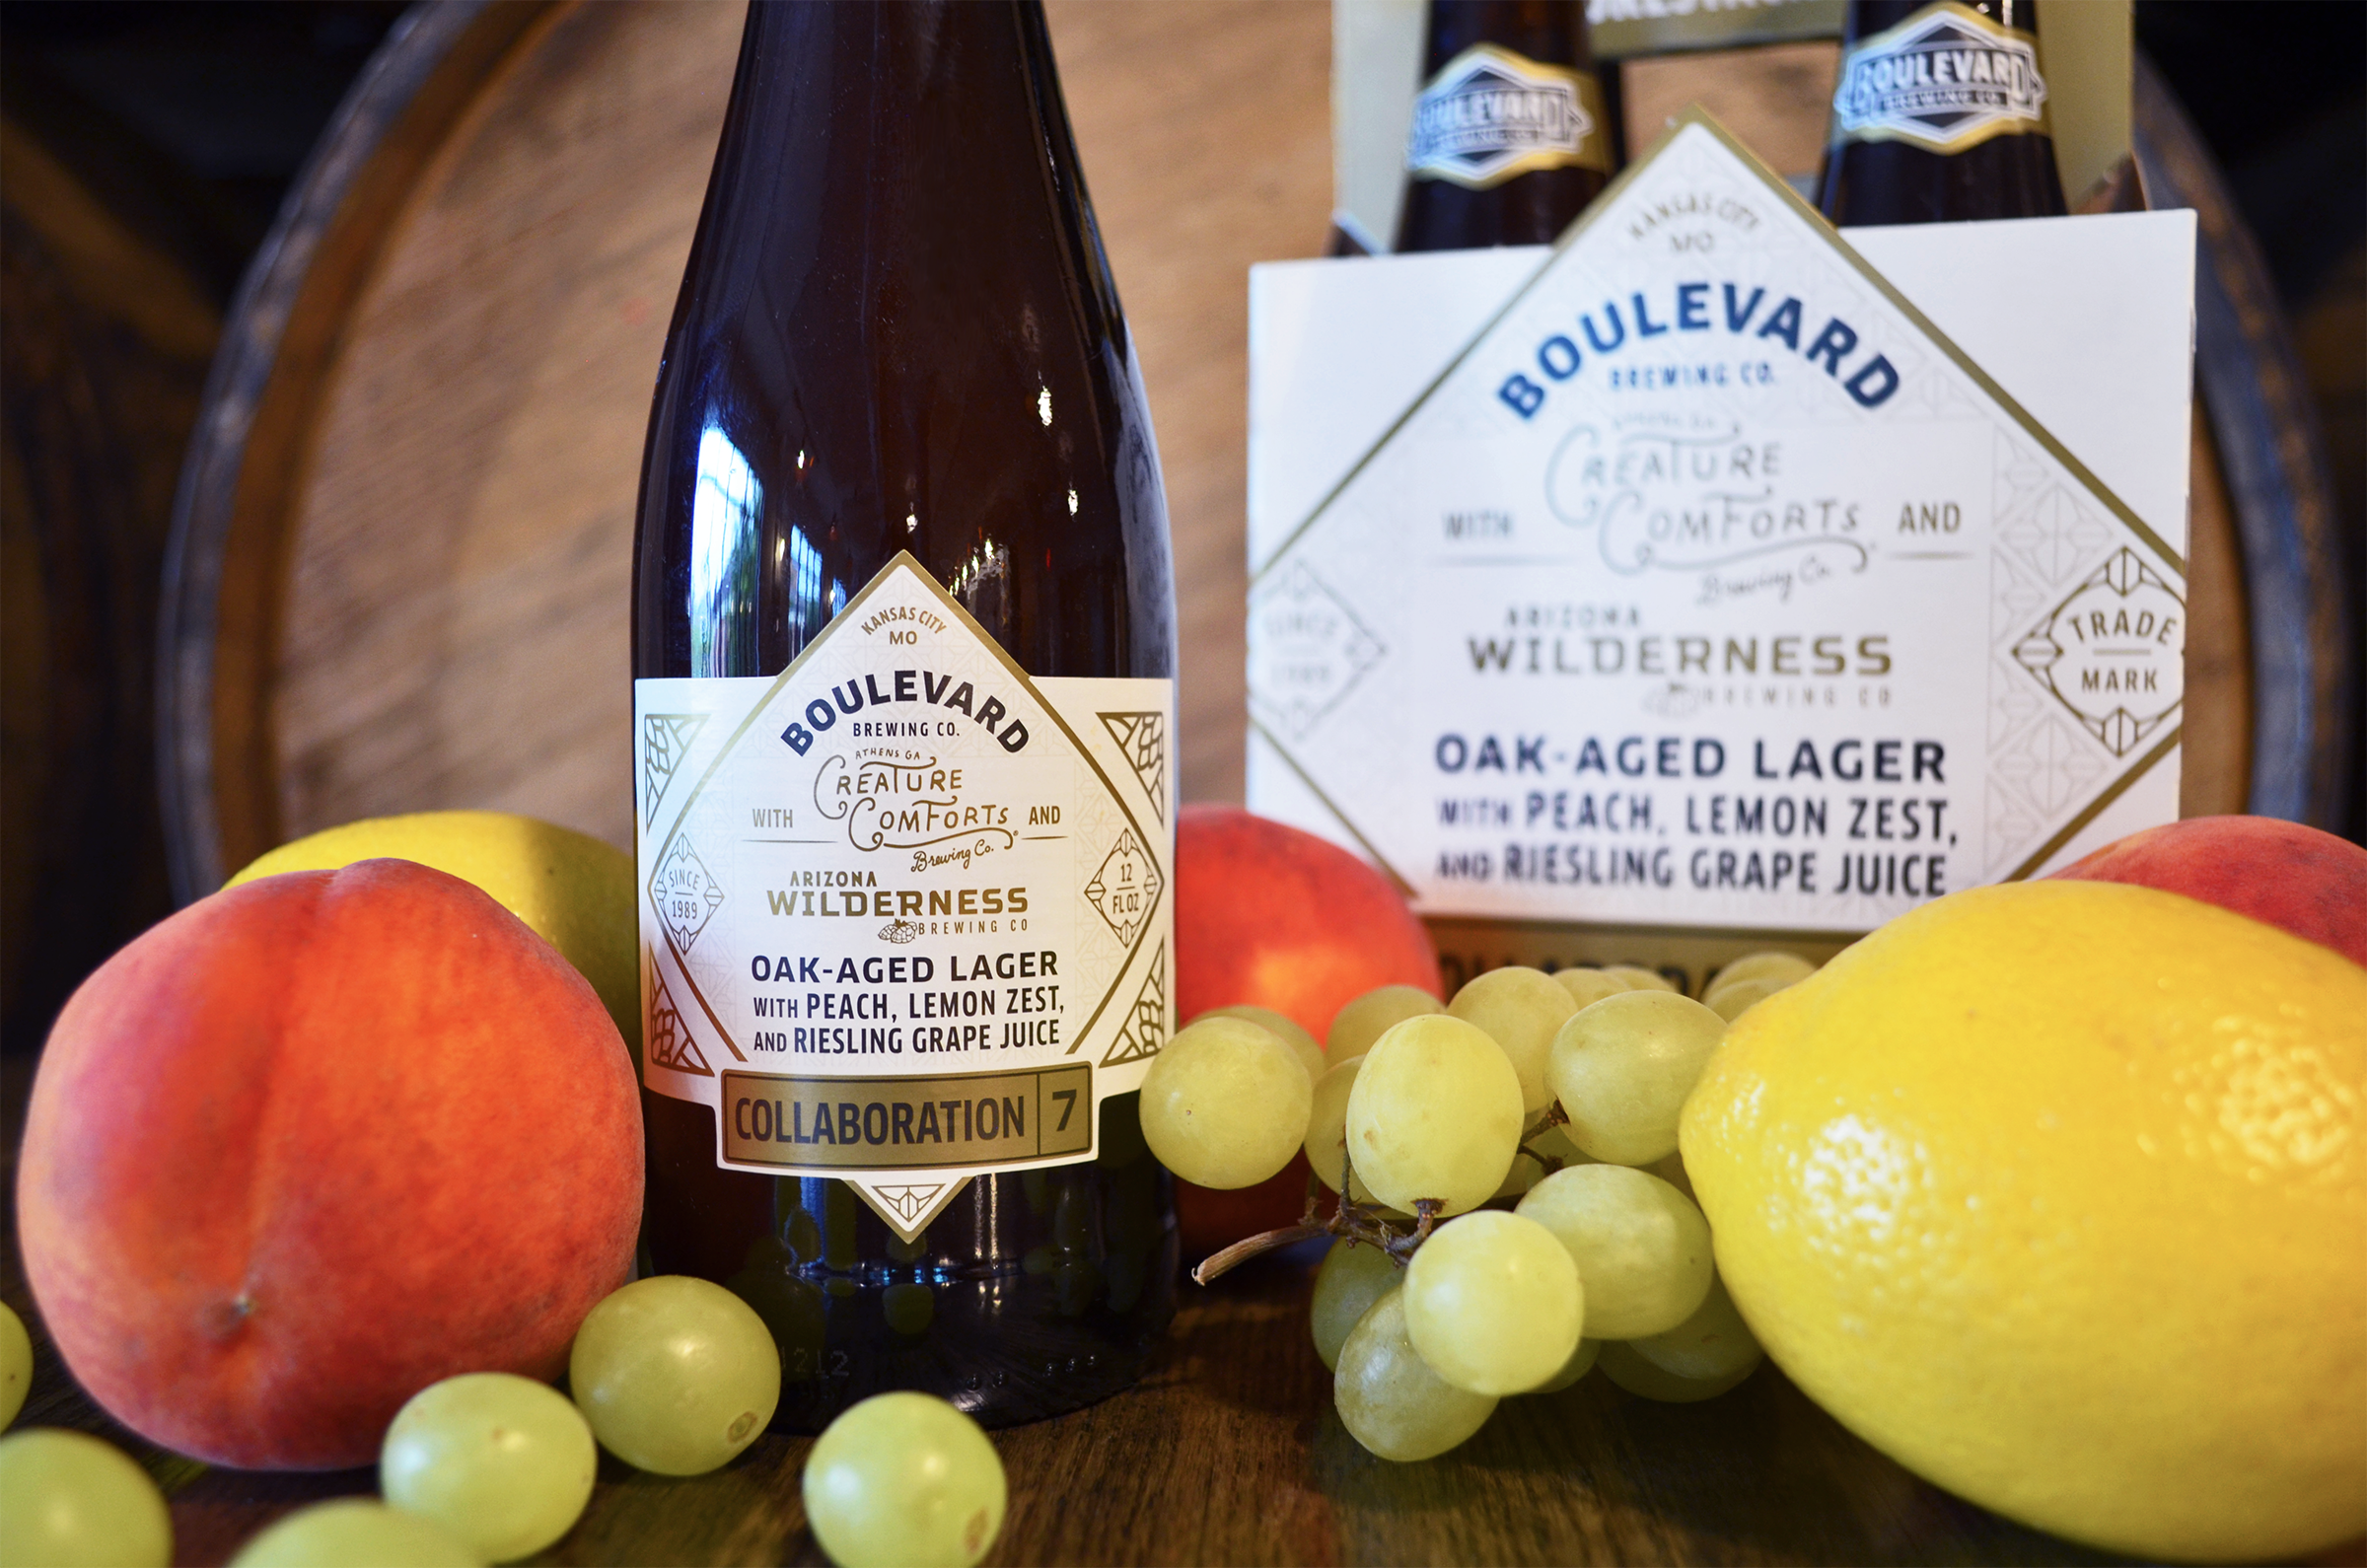 Collaboration No. 7 – Oak-Aged Lager Debuts